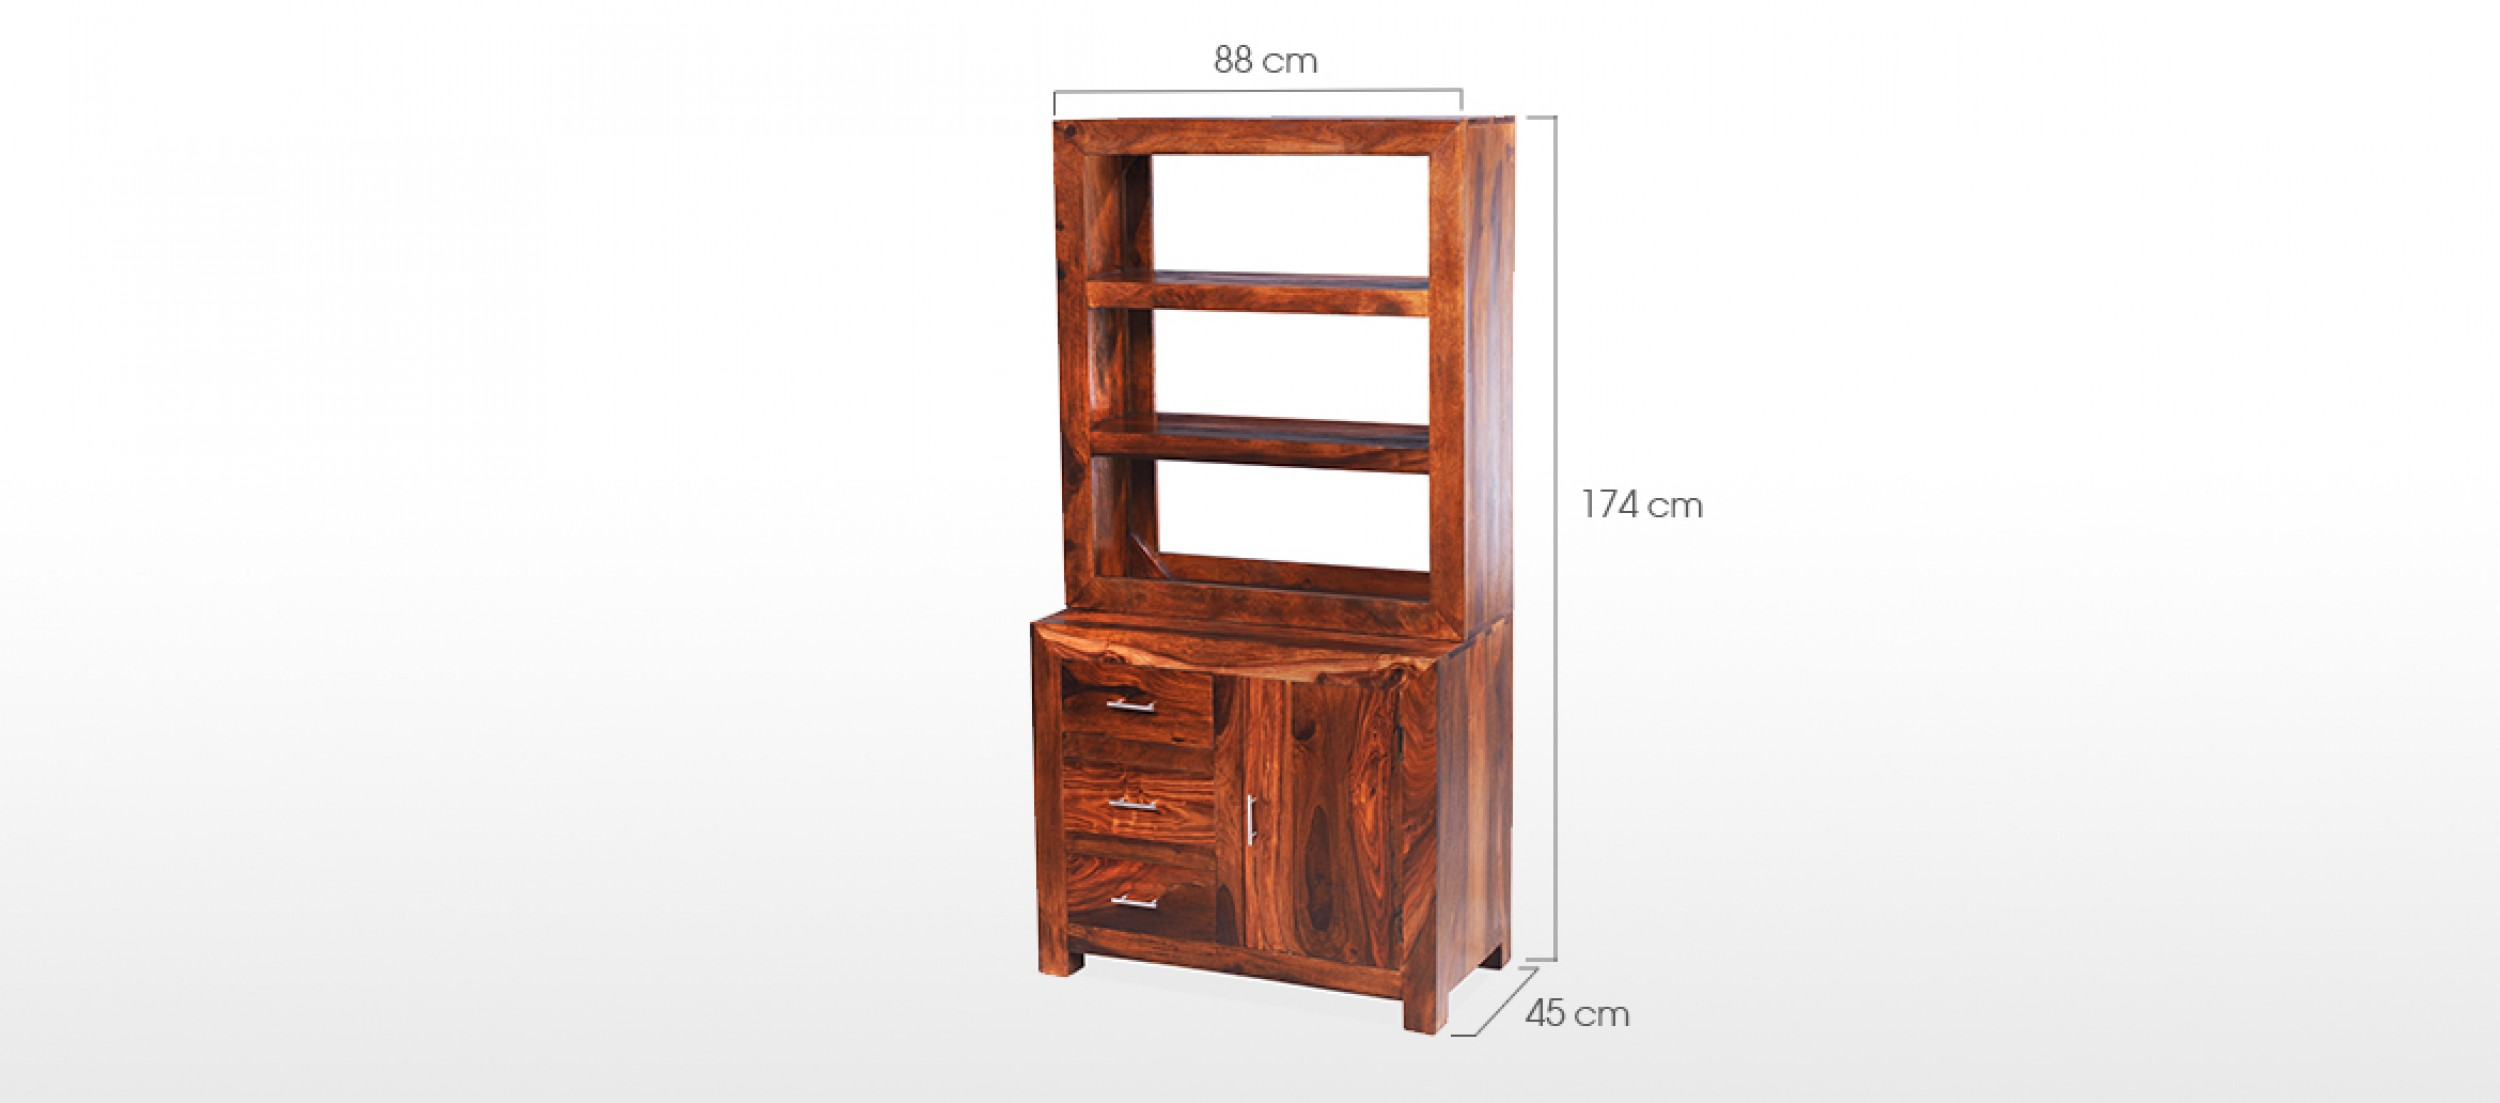 Perfect Dresser Dimensions Small In Inspiration